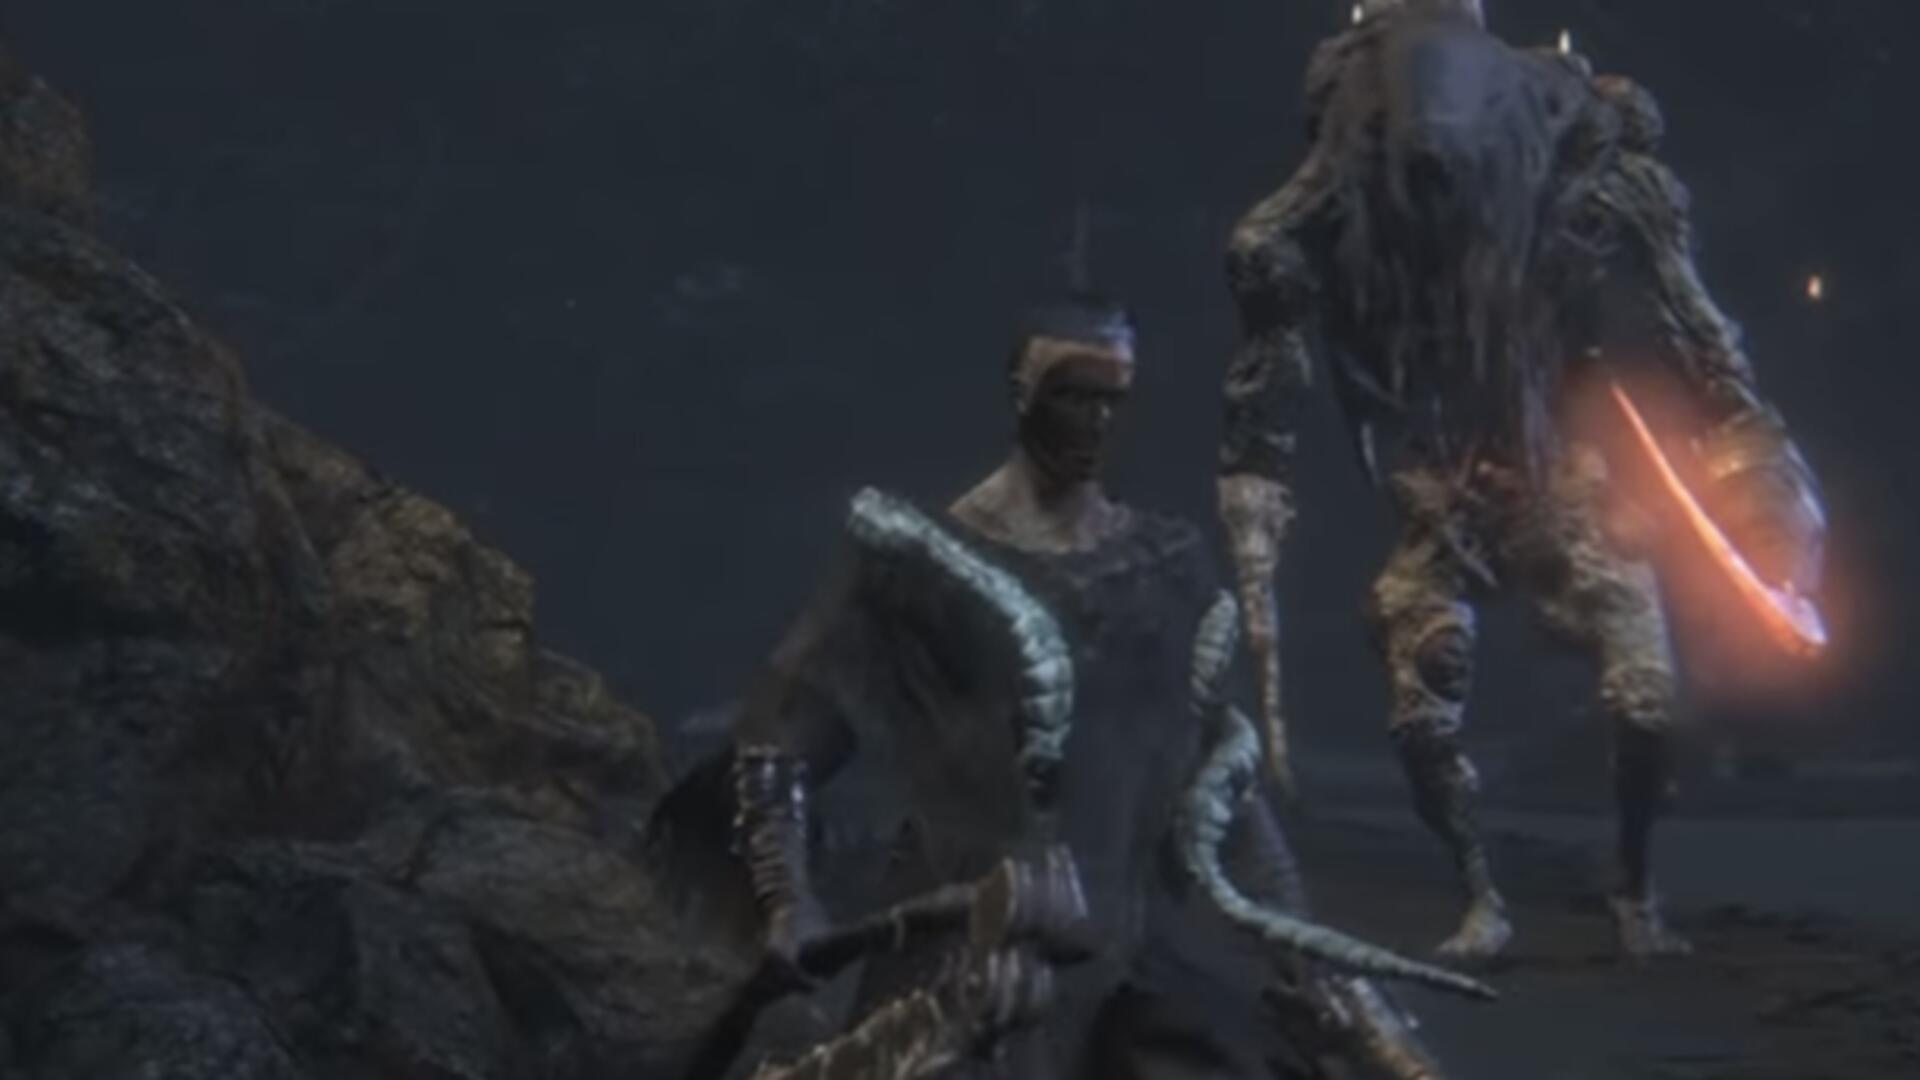 Nearly Three Years After Release, Players Found a Never-Before-Discovered Bloodborne Enemy in a Chalice Dungeon